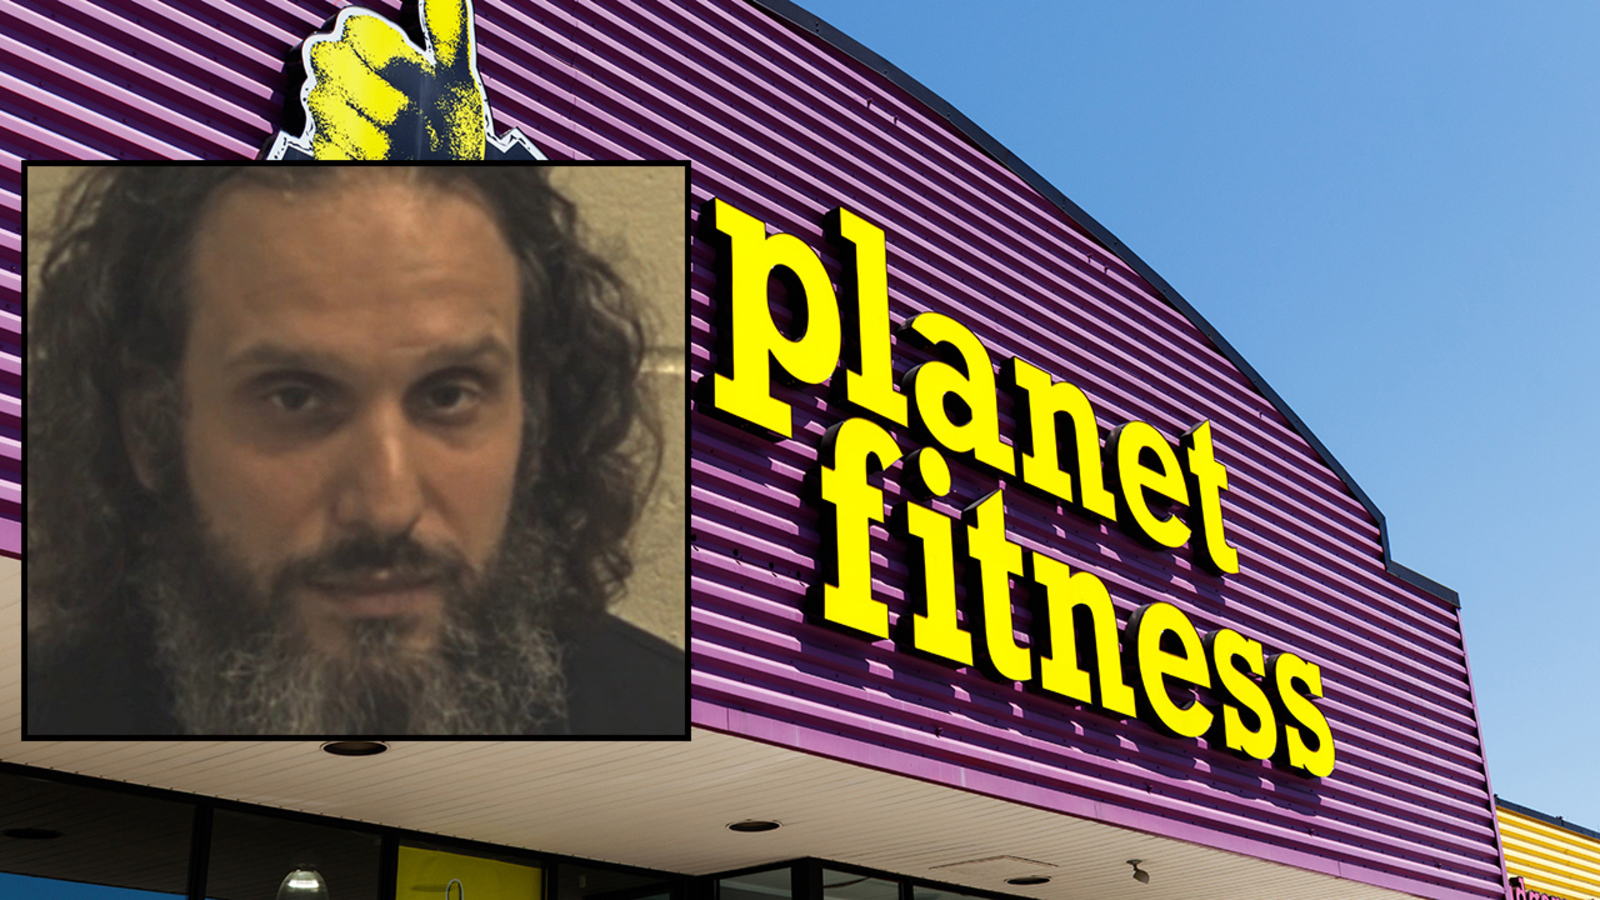 Man arrested for exercising naked at Planet Fitness gym in